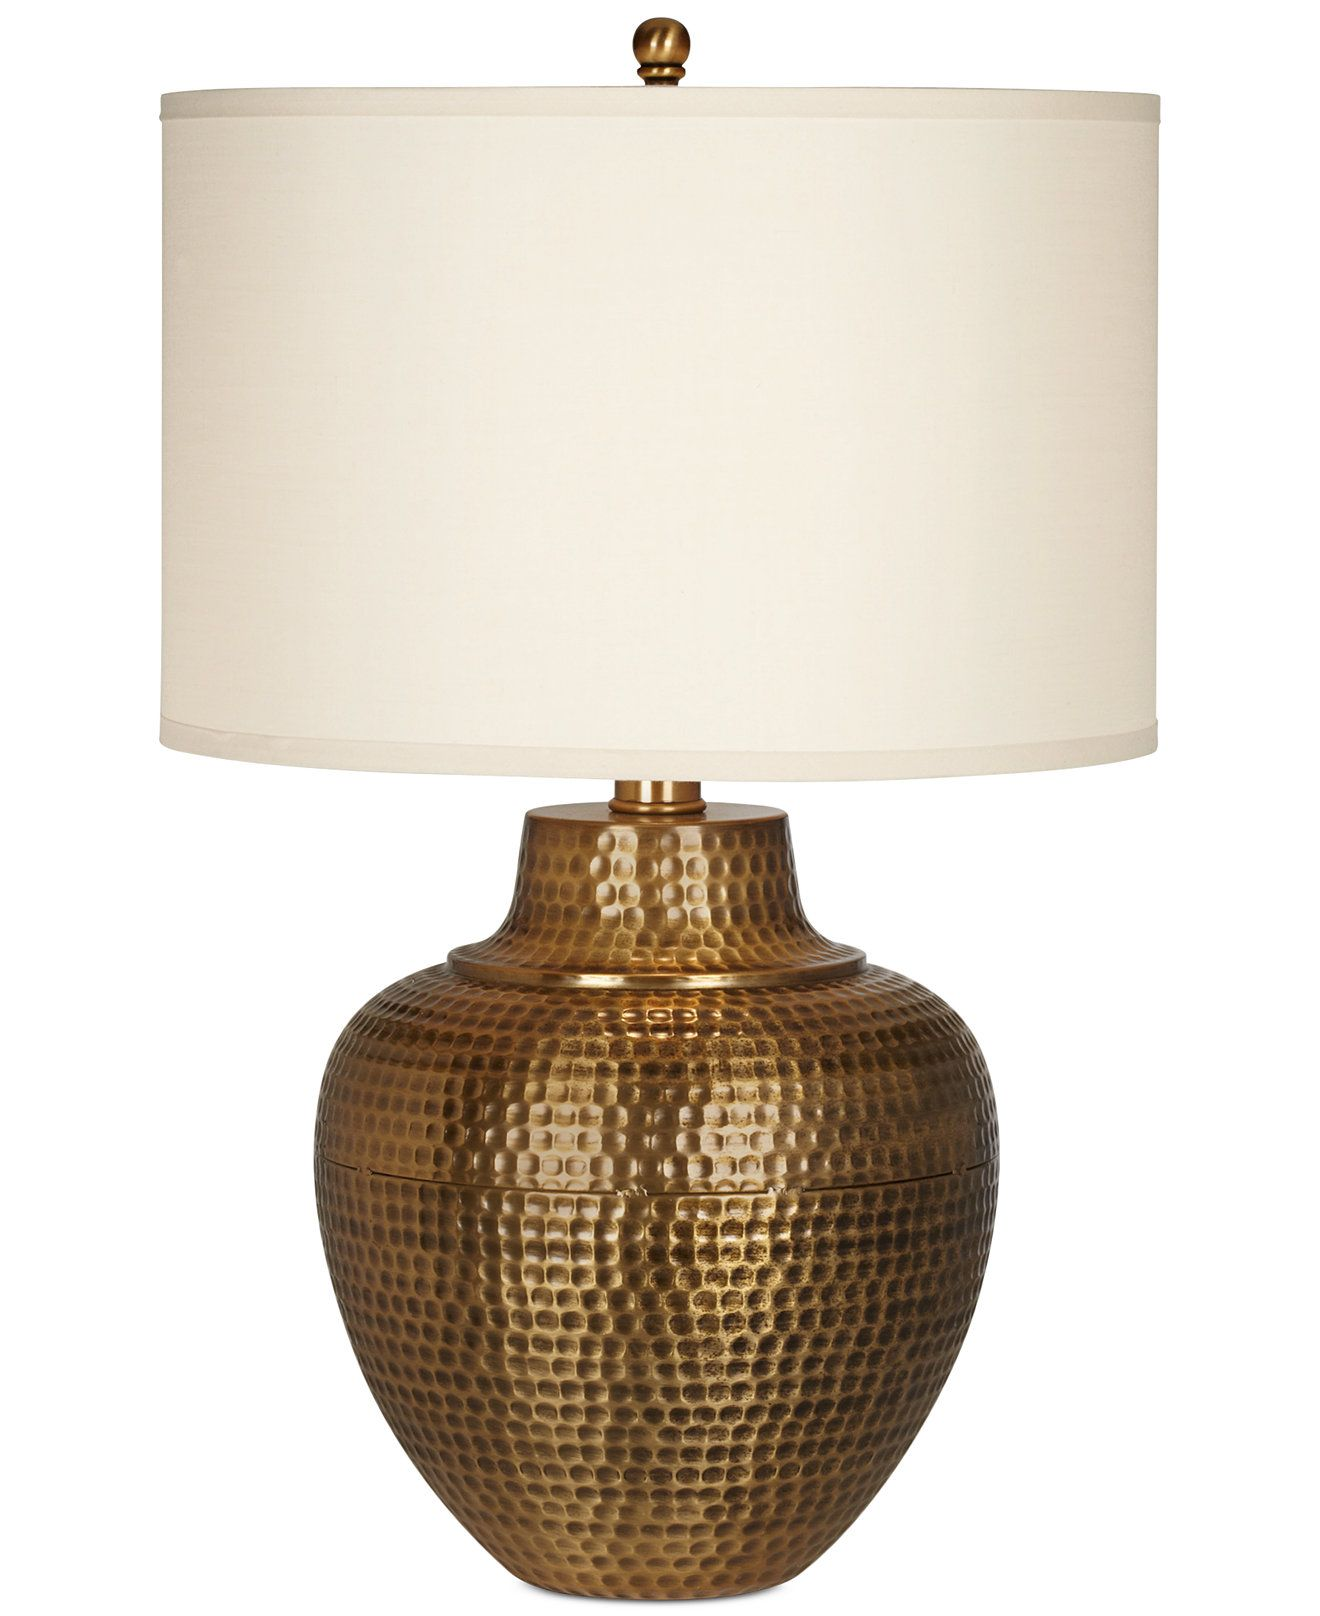 Kathy Ireland Pacific Coast Maison Loft Table Lamp Reviews All Lighting Home Decor Macy S Table Lamp Farmhouse Table Lamps Brass Table Lamps